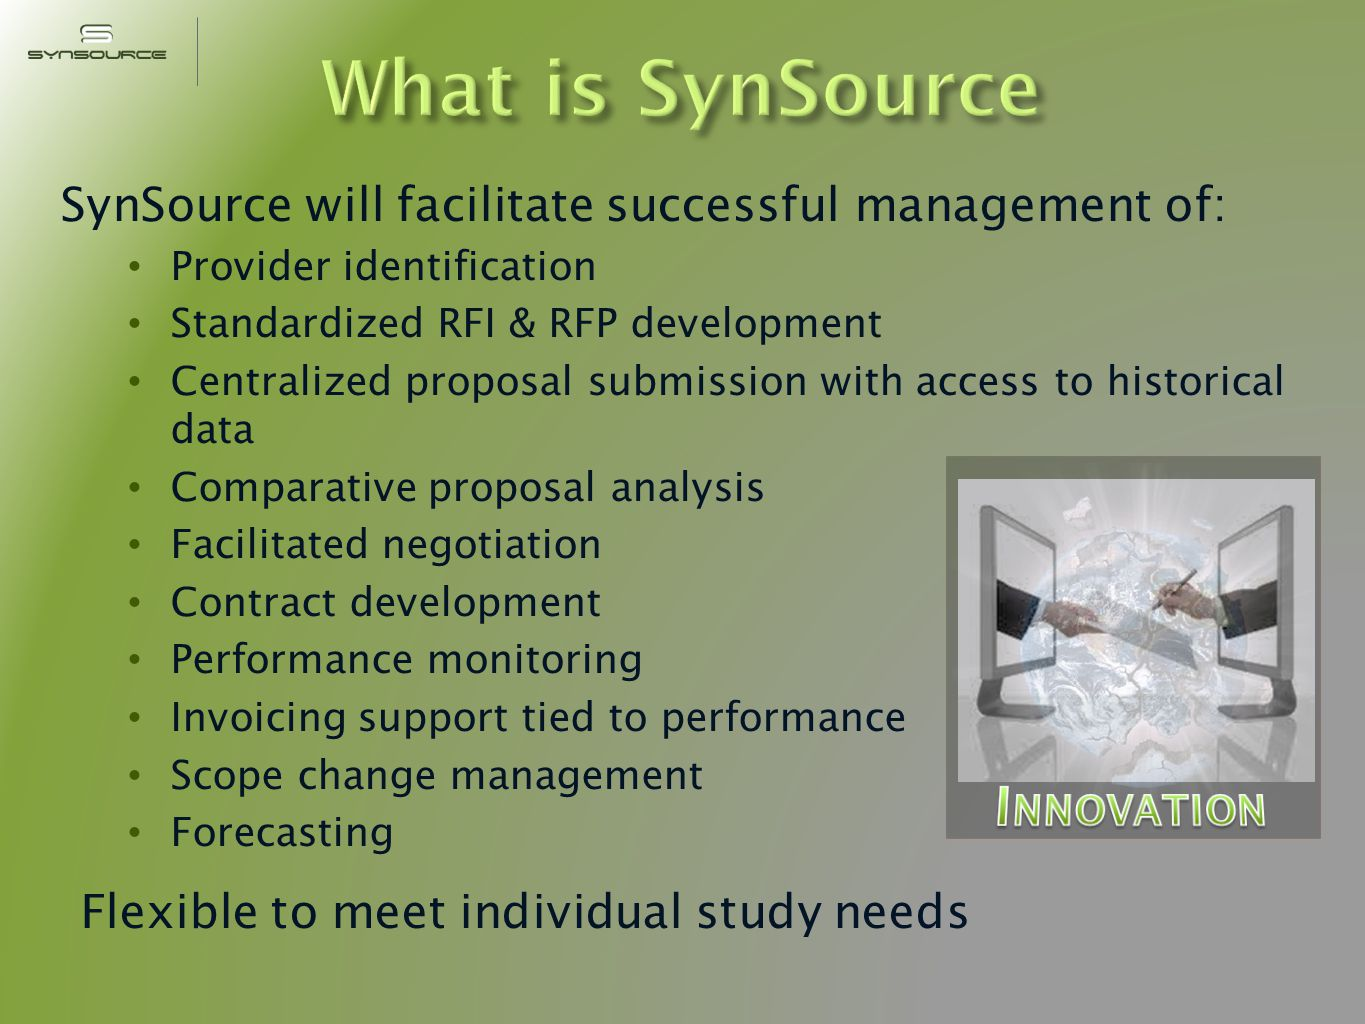 SynSource will facilitate successful management of: Provider identification Standardized RFI & RFP development Centralized proposal submission with access to historical data Comparative proposal analysis Facilitated negotiation Contract development Performance monitoring Invoicing support tied to performance Scope change management Forecasting Flexible to meet individual study needs